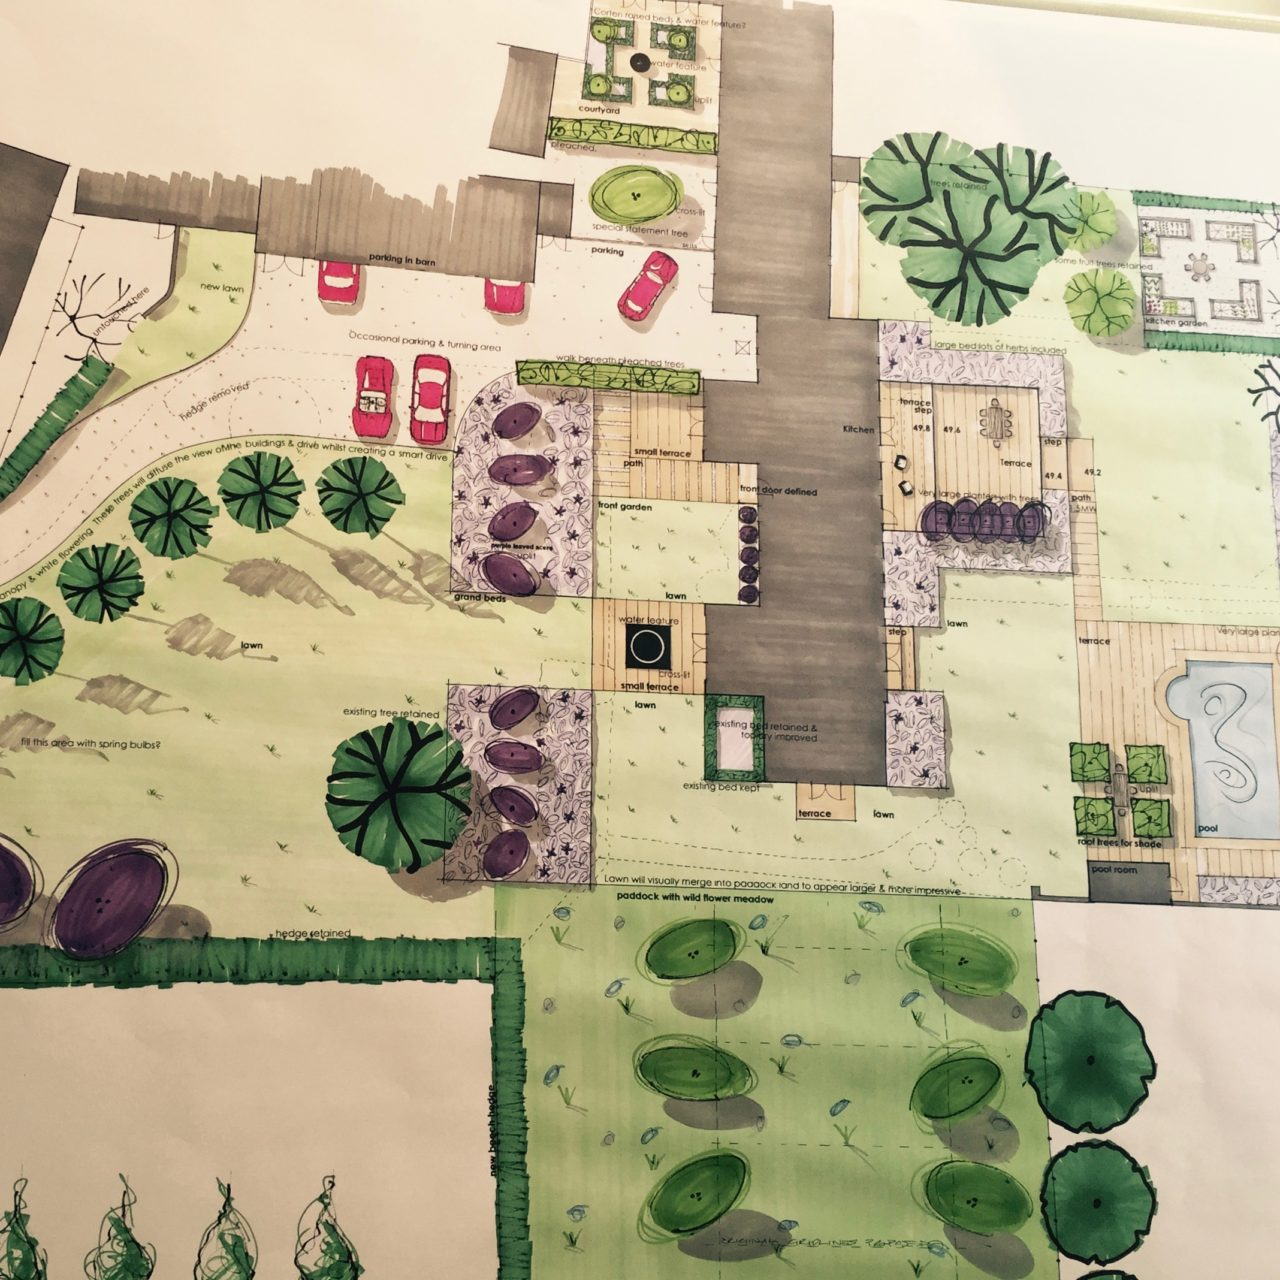 This is part of my drawing of a large garden surrounding a series of bsrns